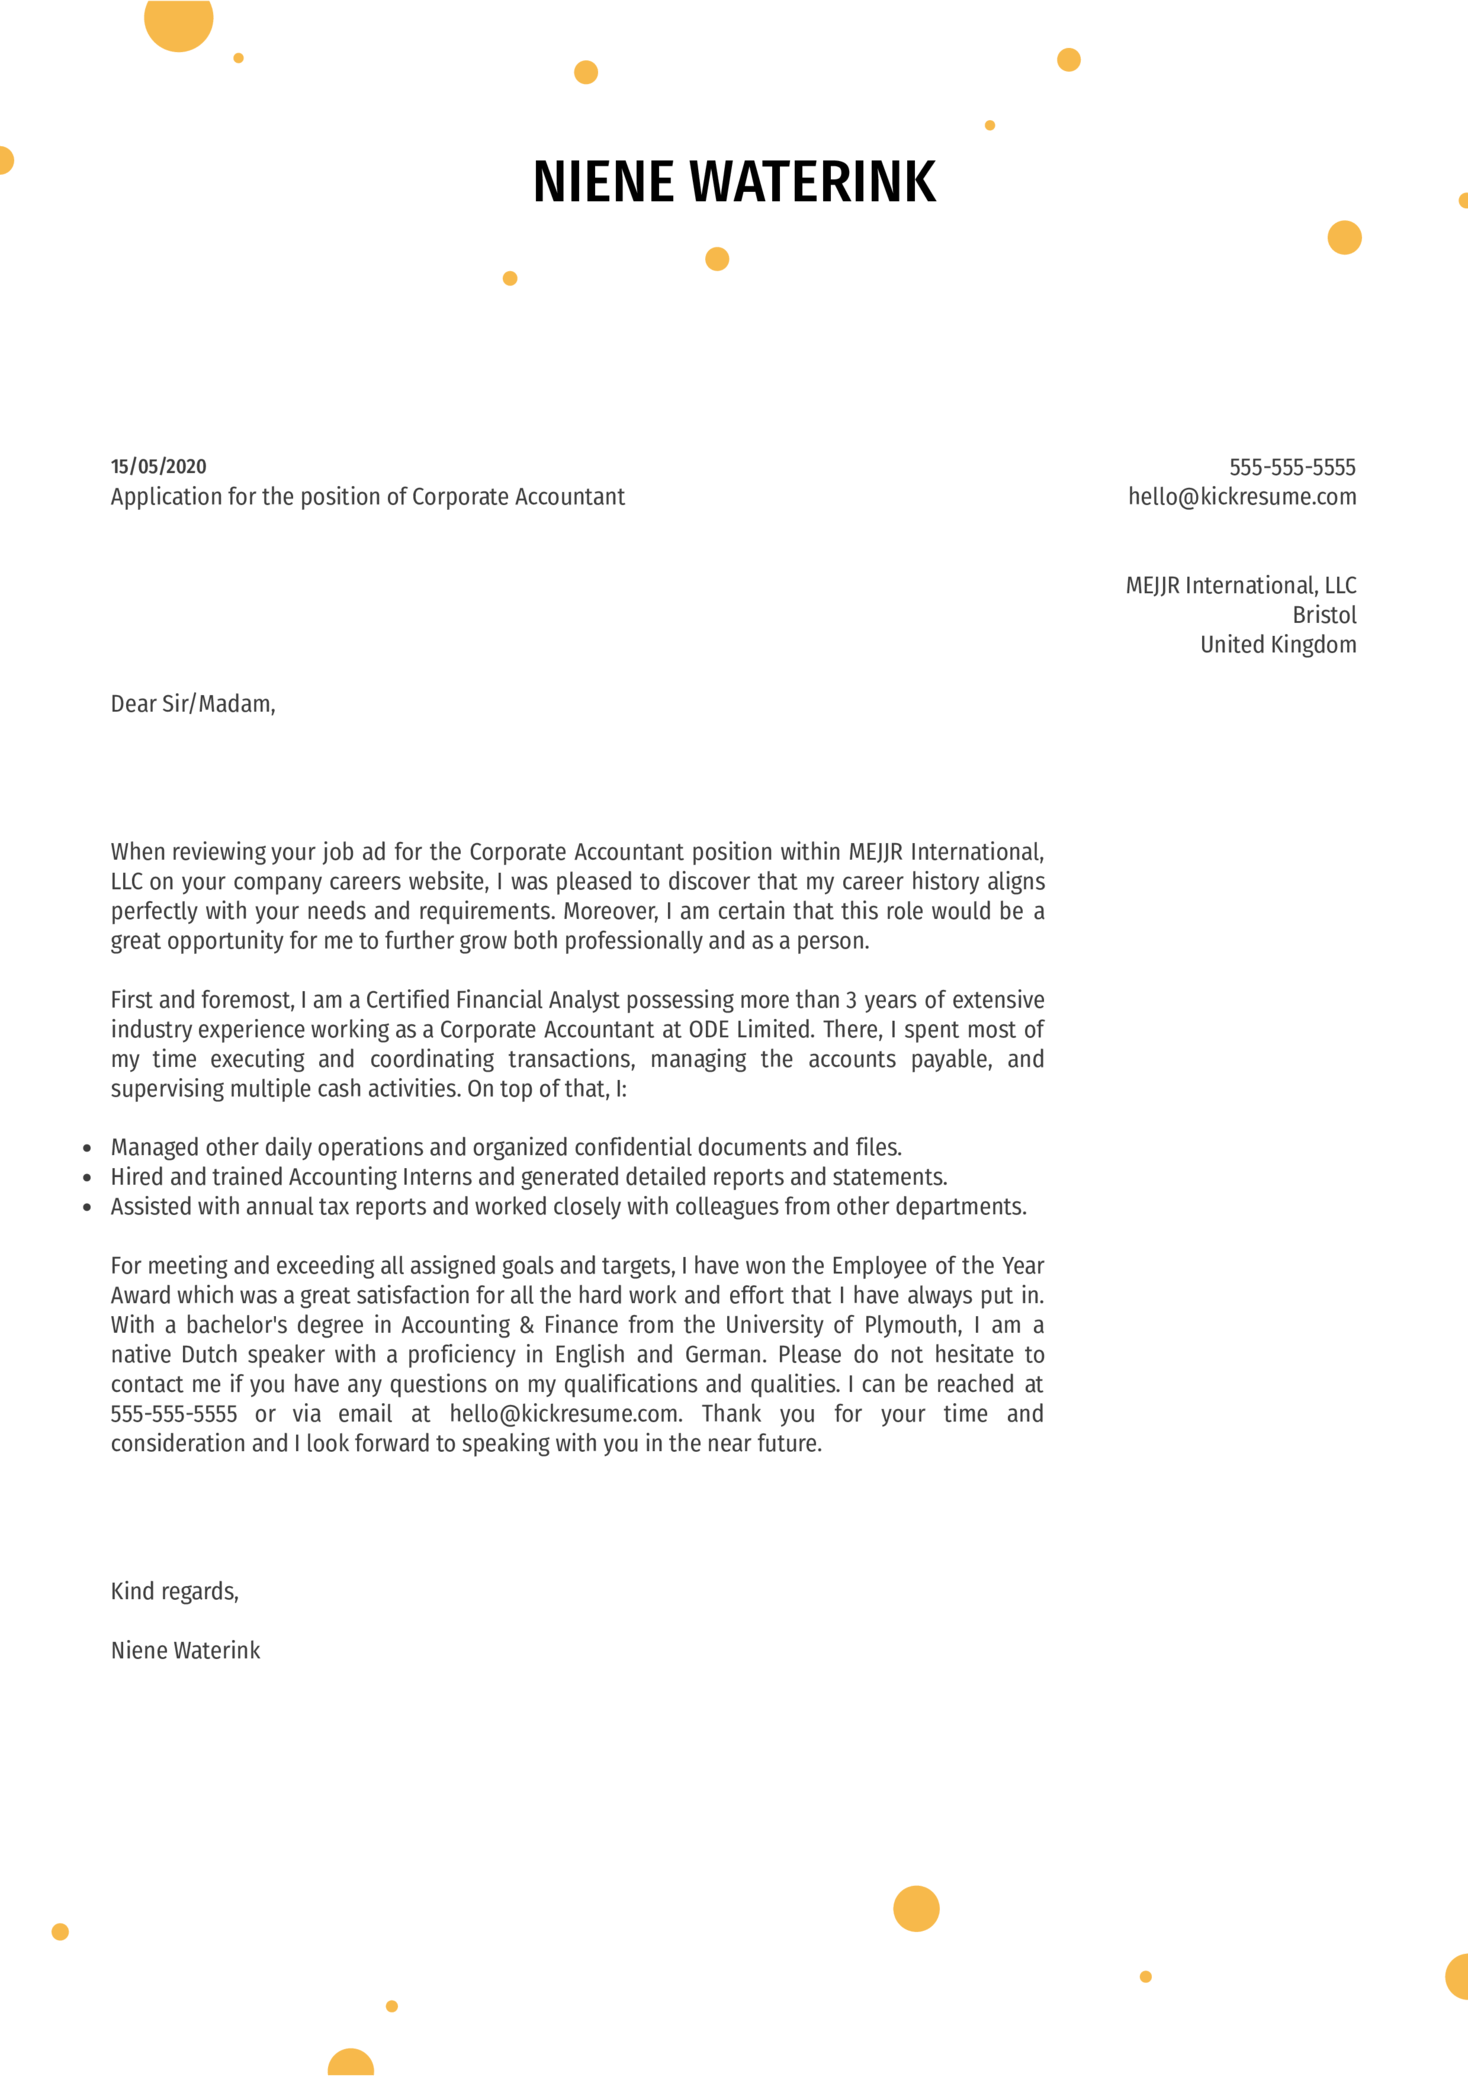 Corporate Accountant Cover Letter Example